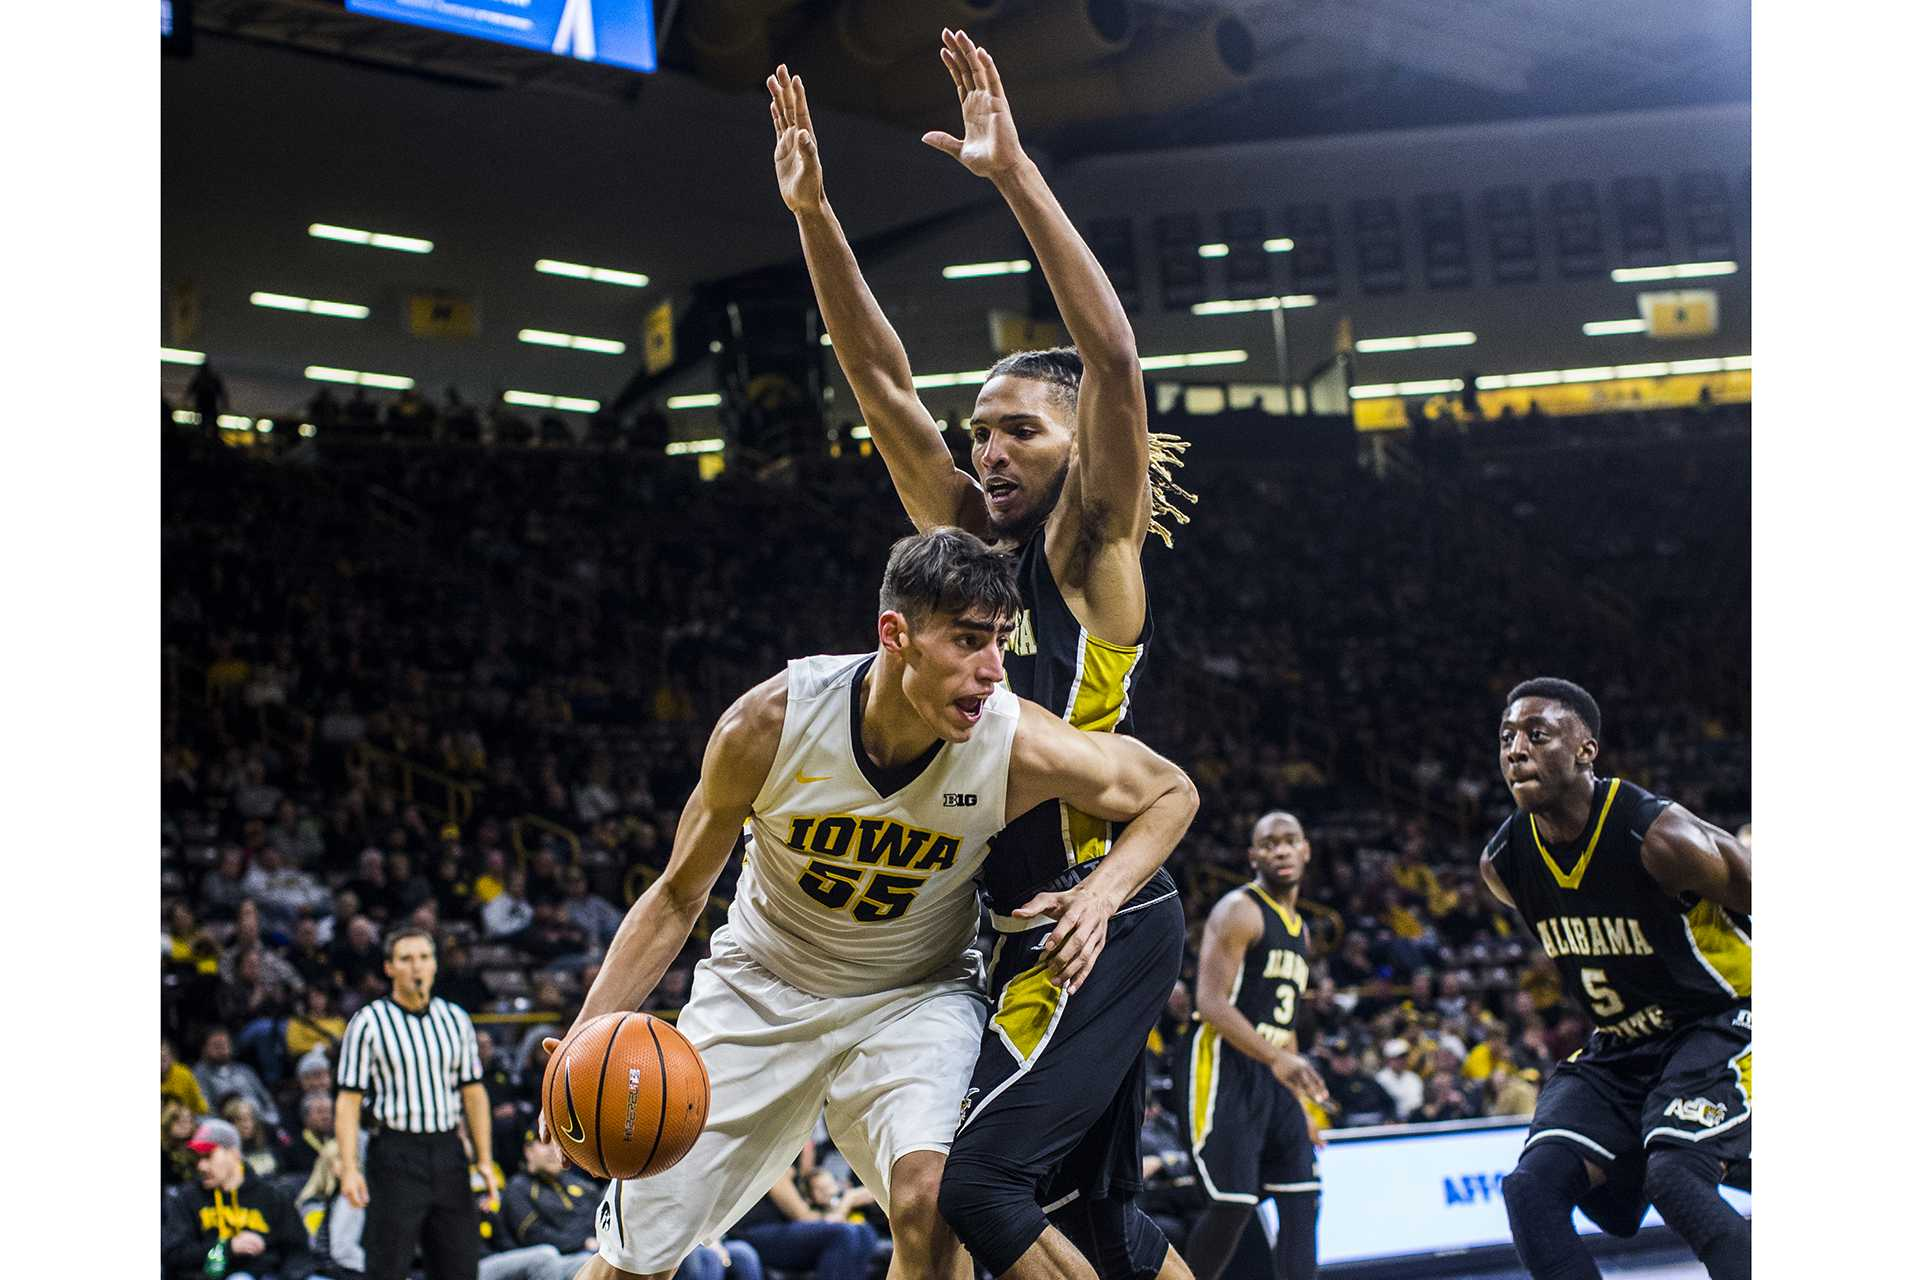 Iowa forward Luka Garza dribbles on the baseline under a Alabama State defender during a men's basketball game in Carver-Hawkeye Arena on Sunday, Nov. 12, 2017. The Hawkeyes defeated the Hornets, 92-58. (Nick Rohlman/The Daily Iowan)